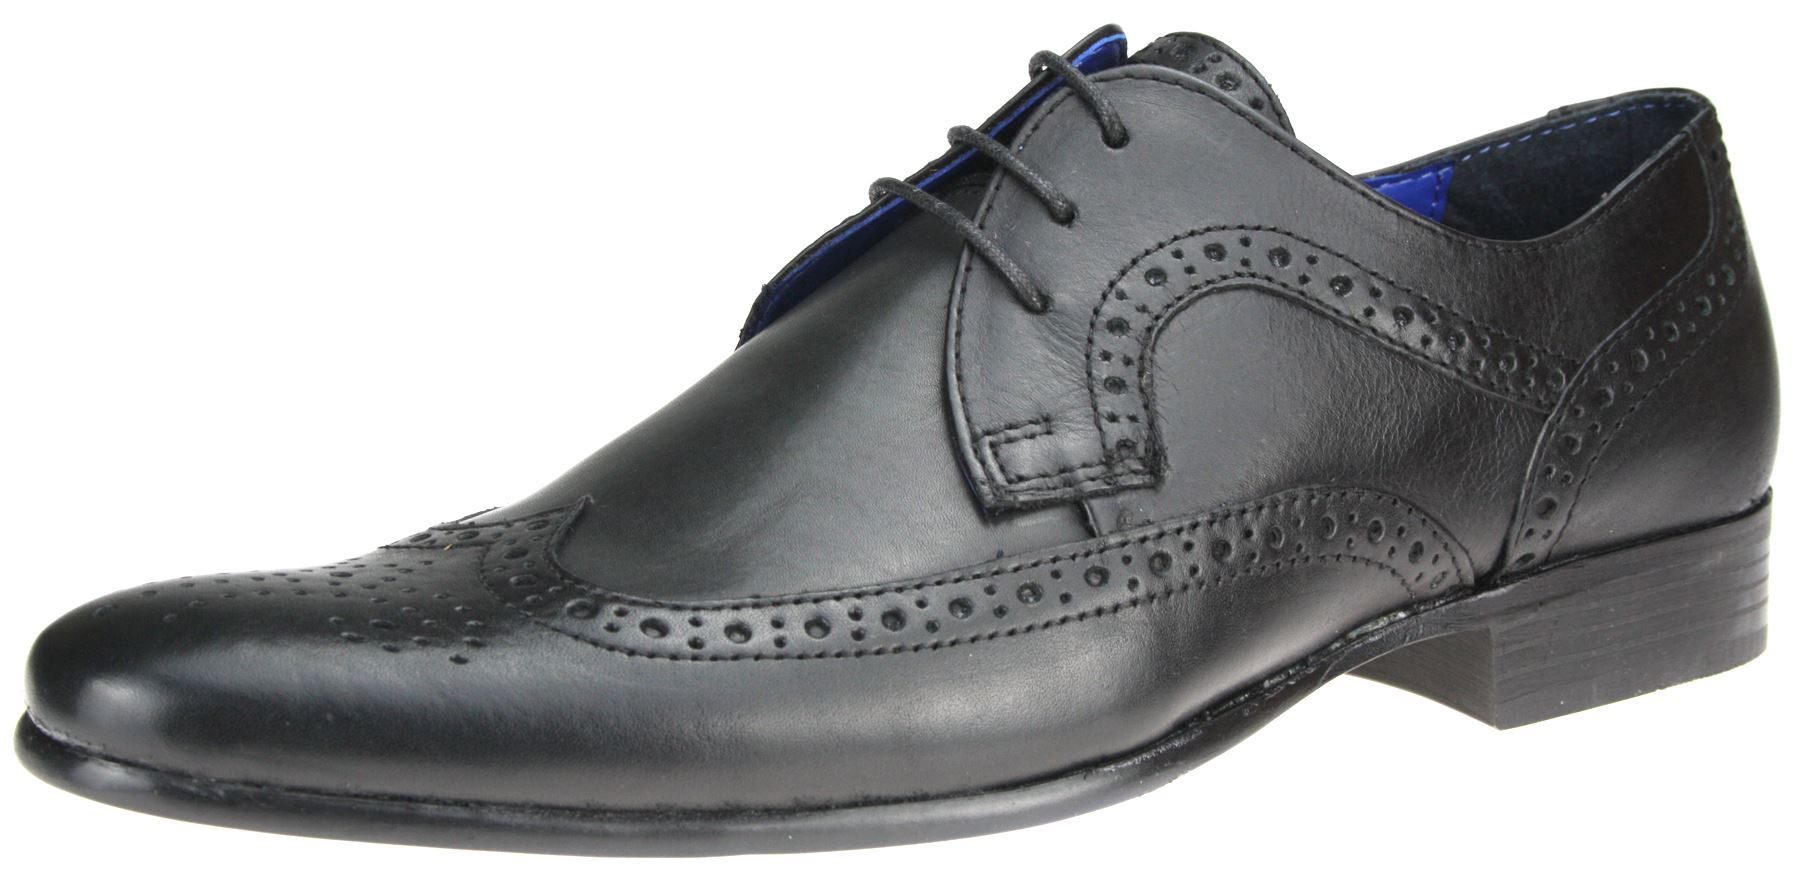 Zapatos grises Red tape para hombre wSI9G